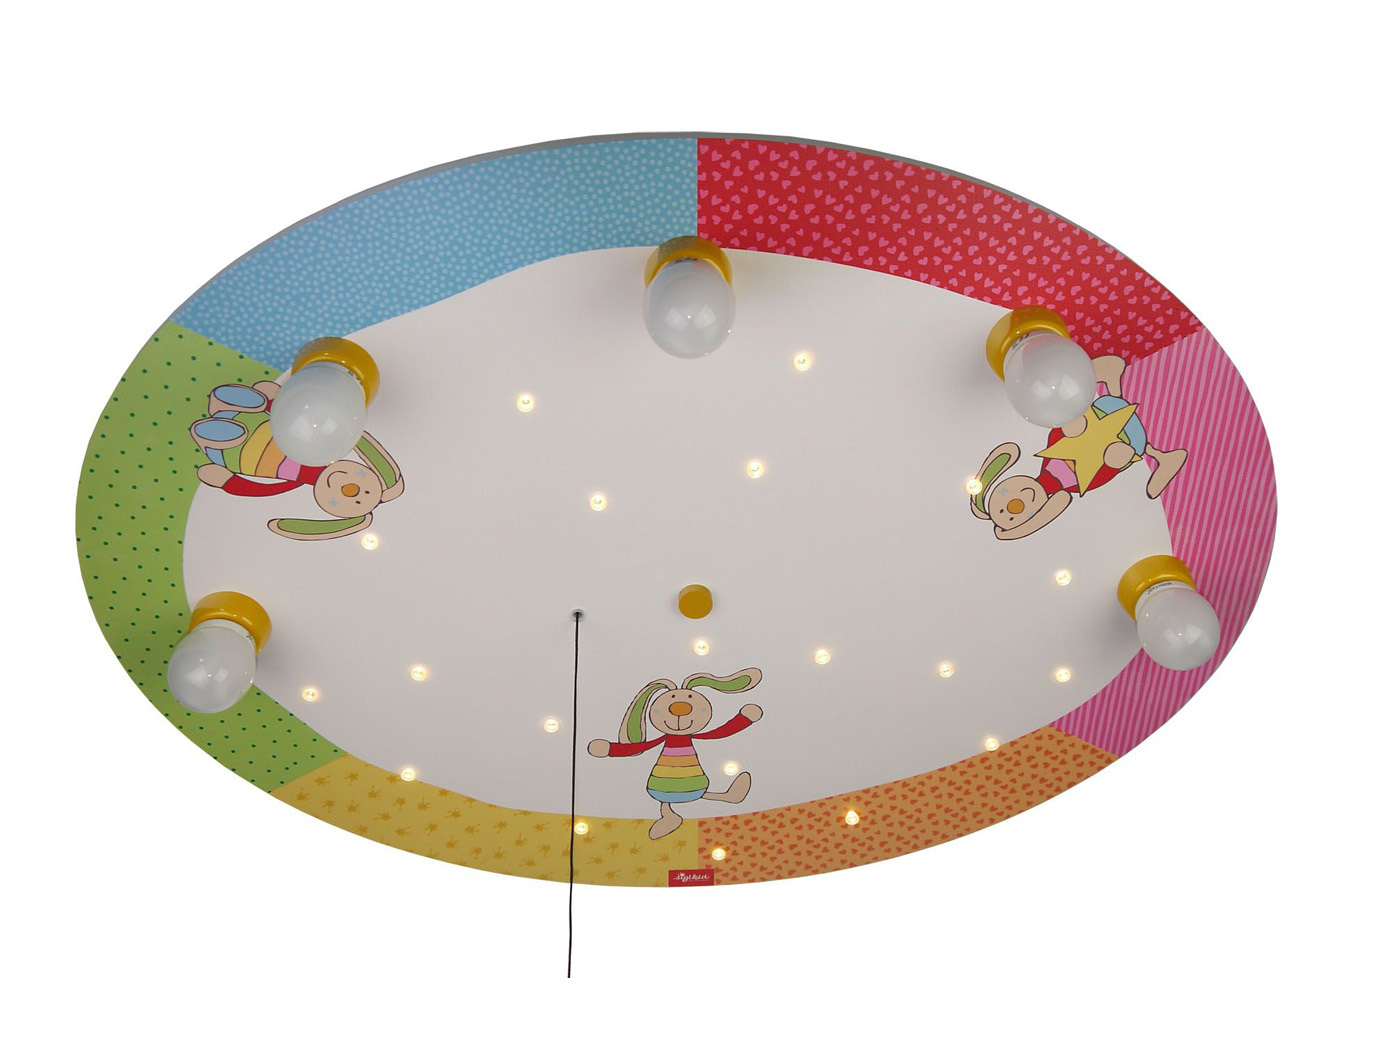 Kinderlampe decke perfect kinderlampe fee fuchsia lila for Kinderlampe decke